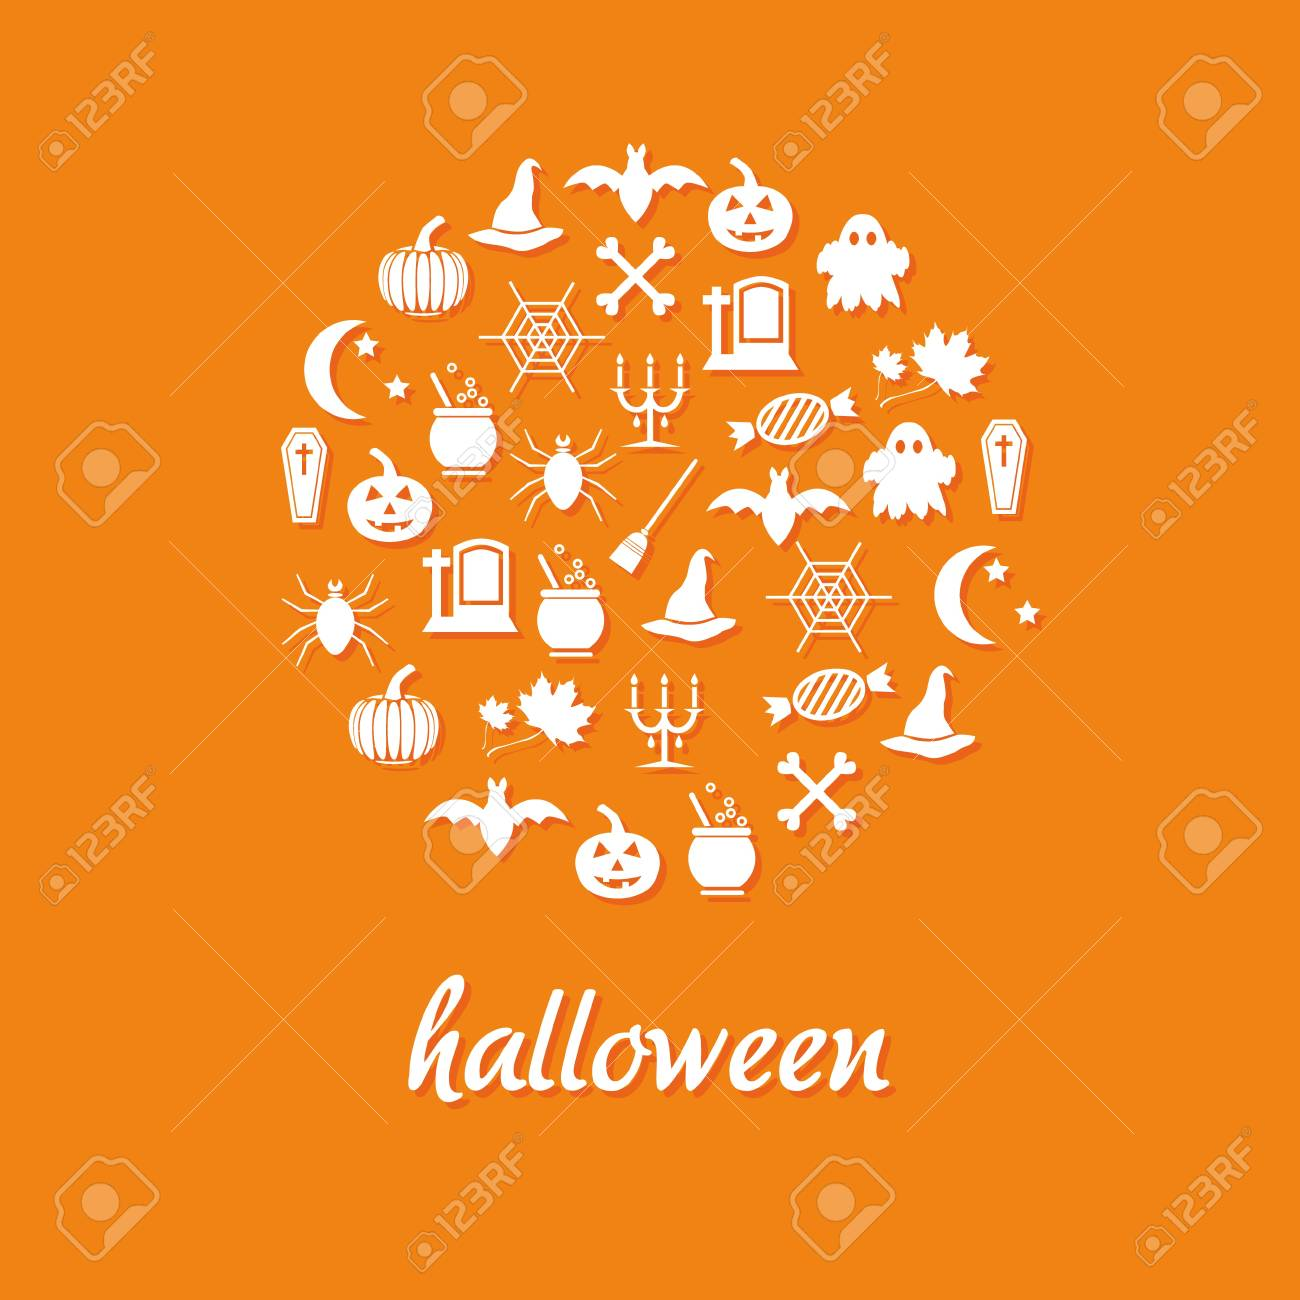 halloween icons in circle Stock Vector - 15073164